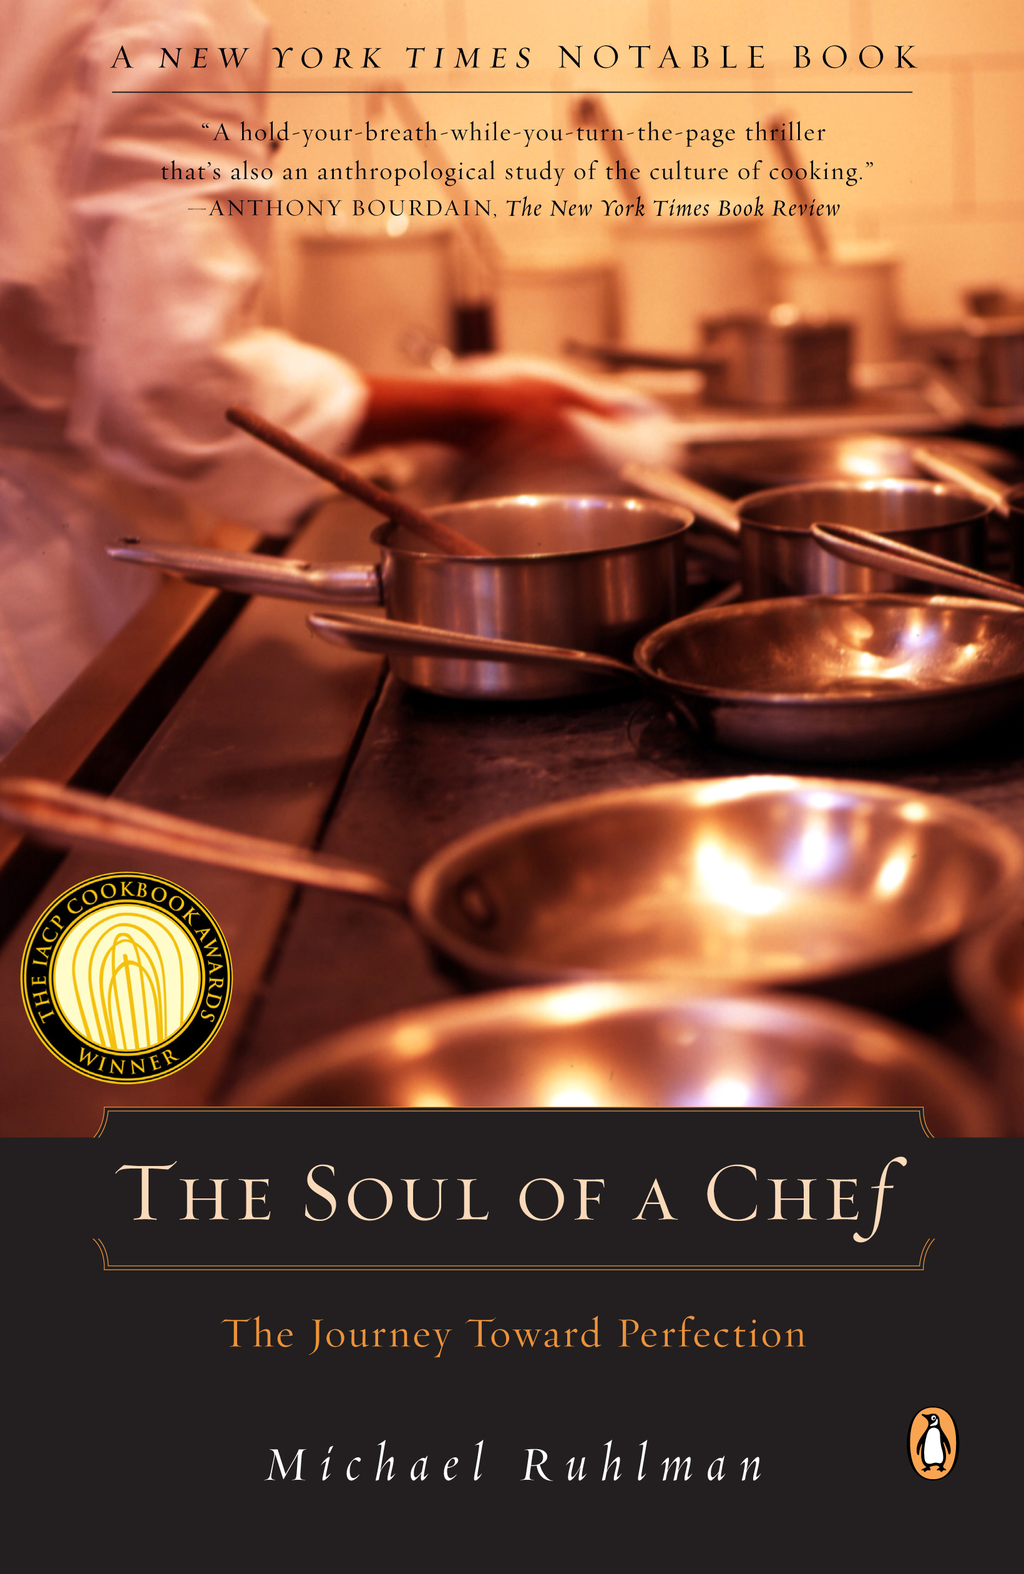 The Soul of a Chef: The Journey Toward Perfection By: Michael Ruhlman